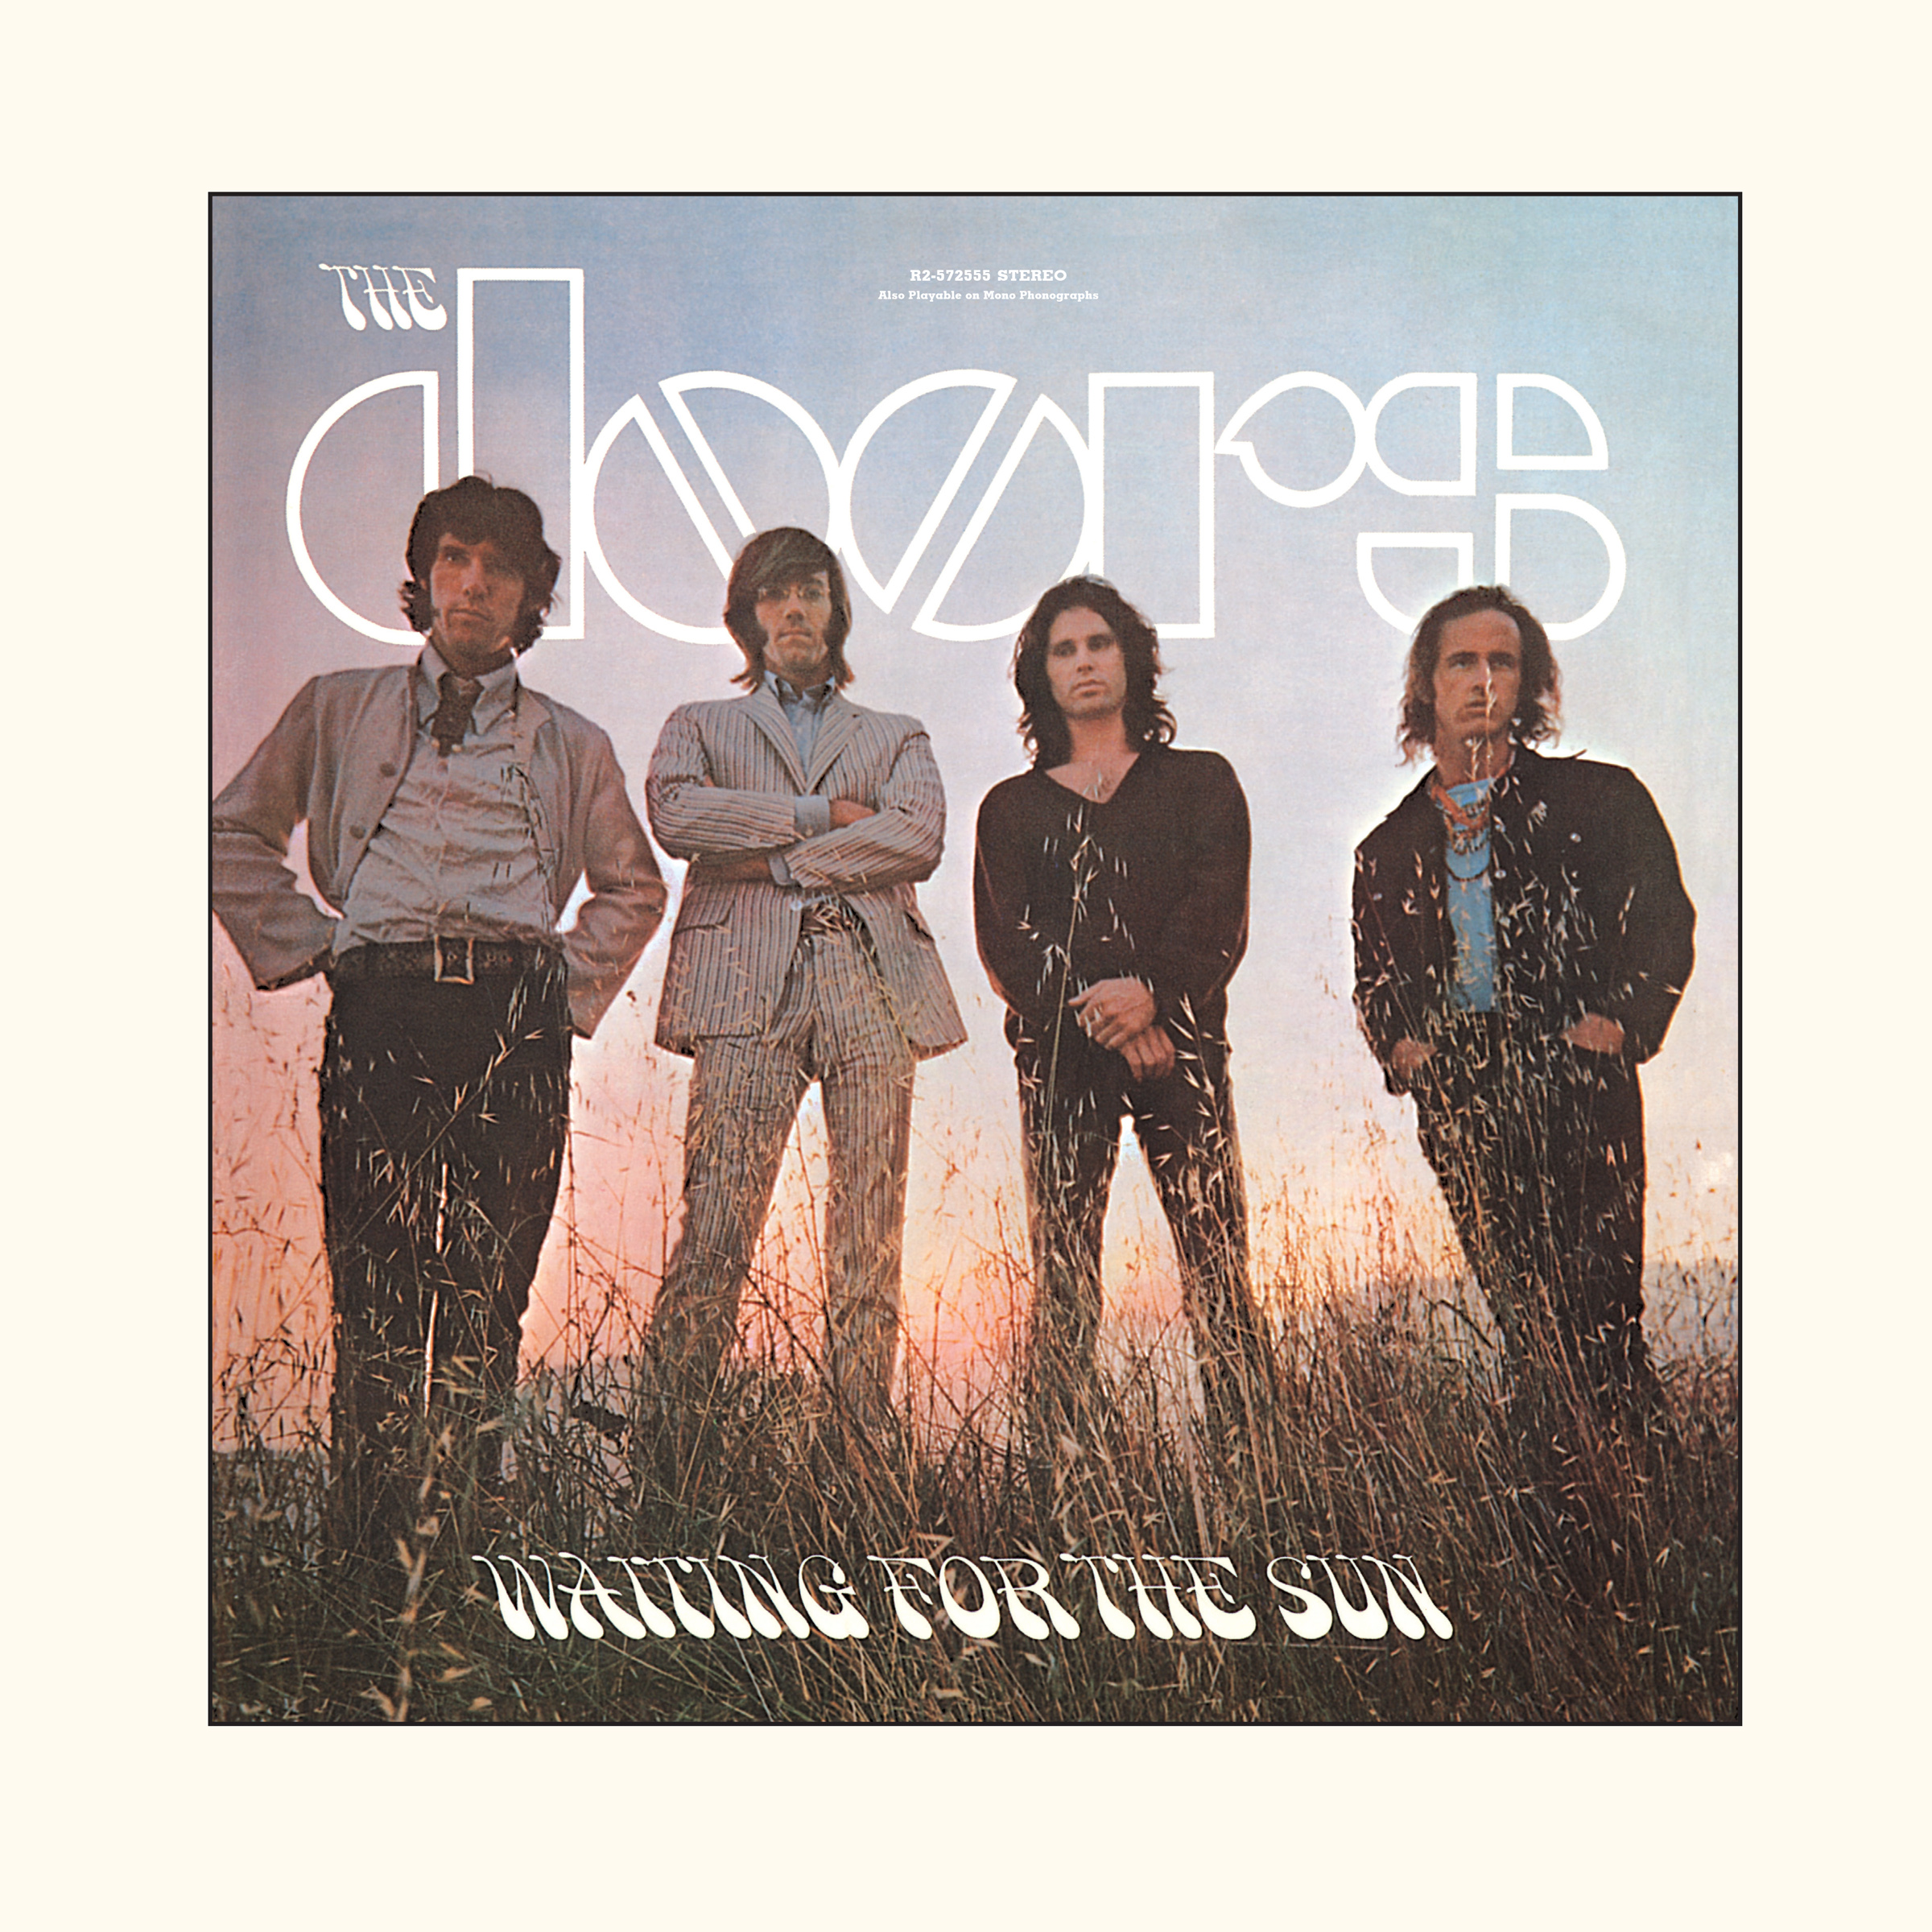 The Doors – Waiting for the Sun (50th Anniversary Deluxe Edition)